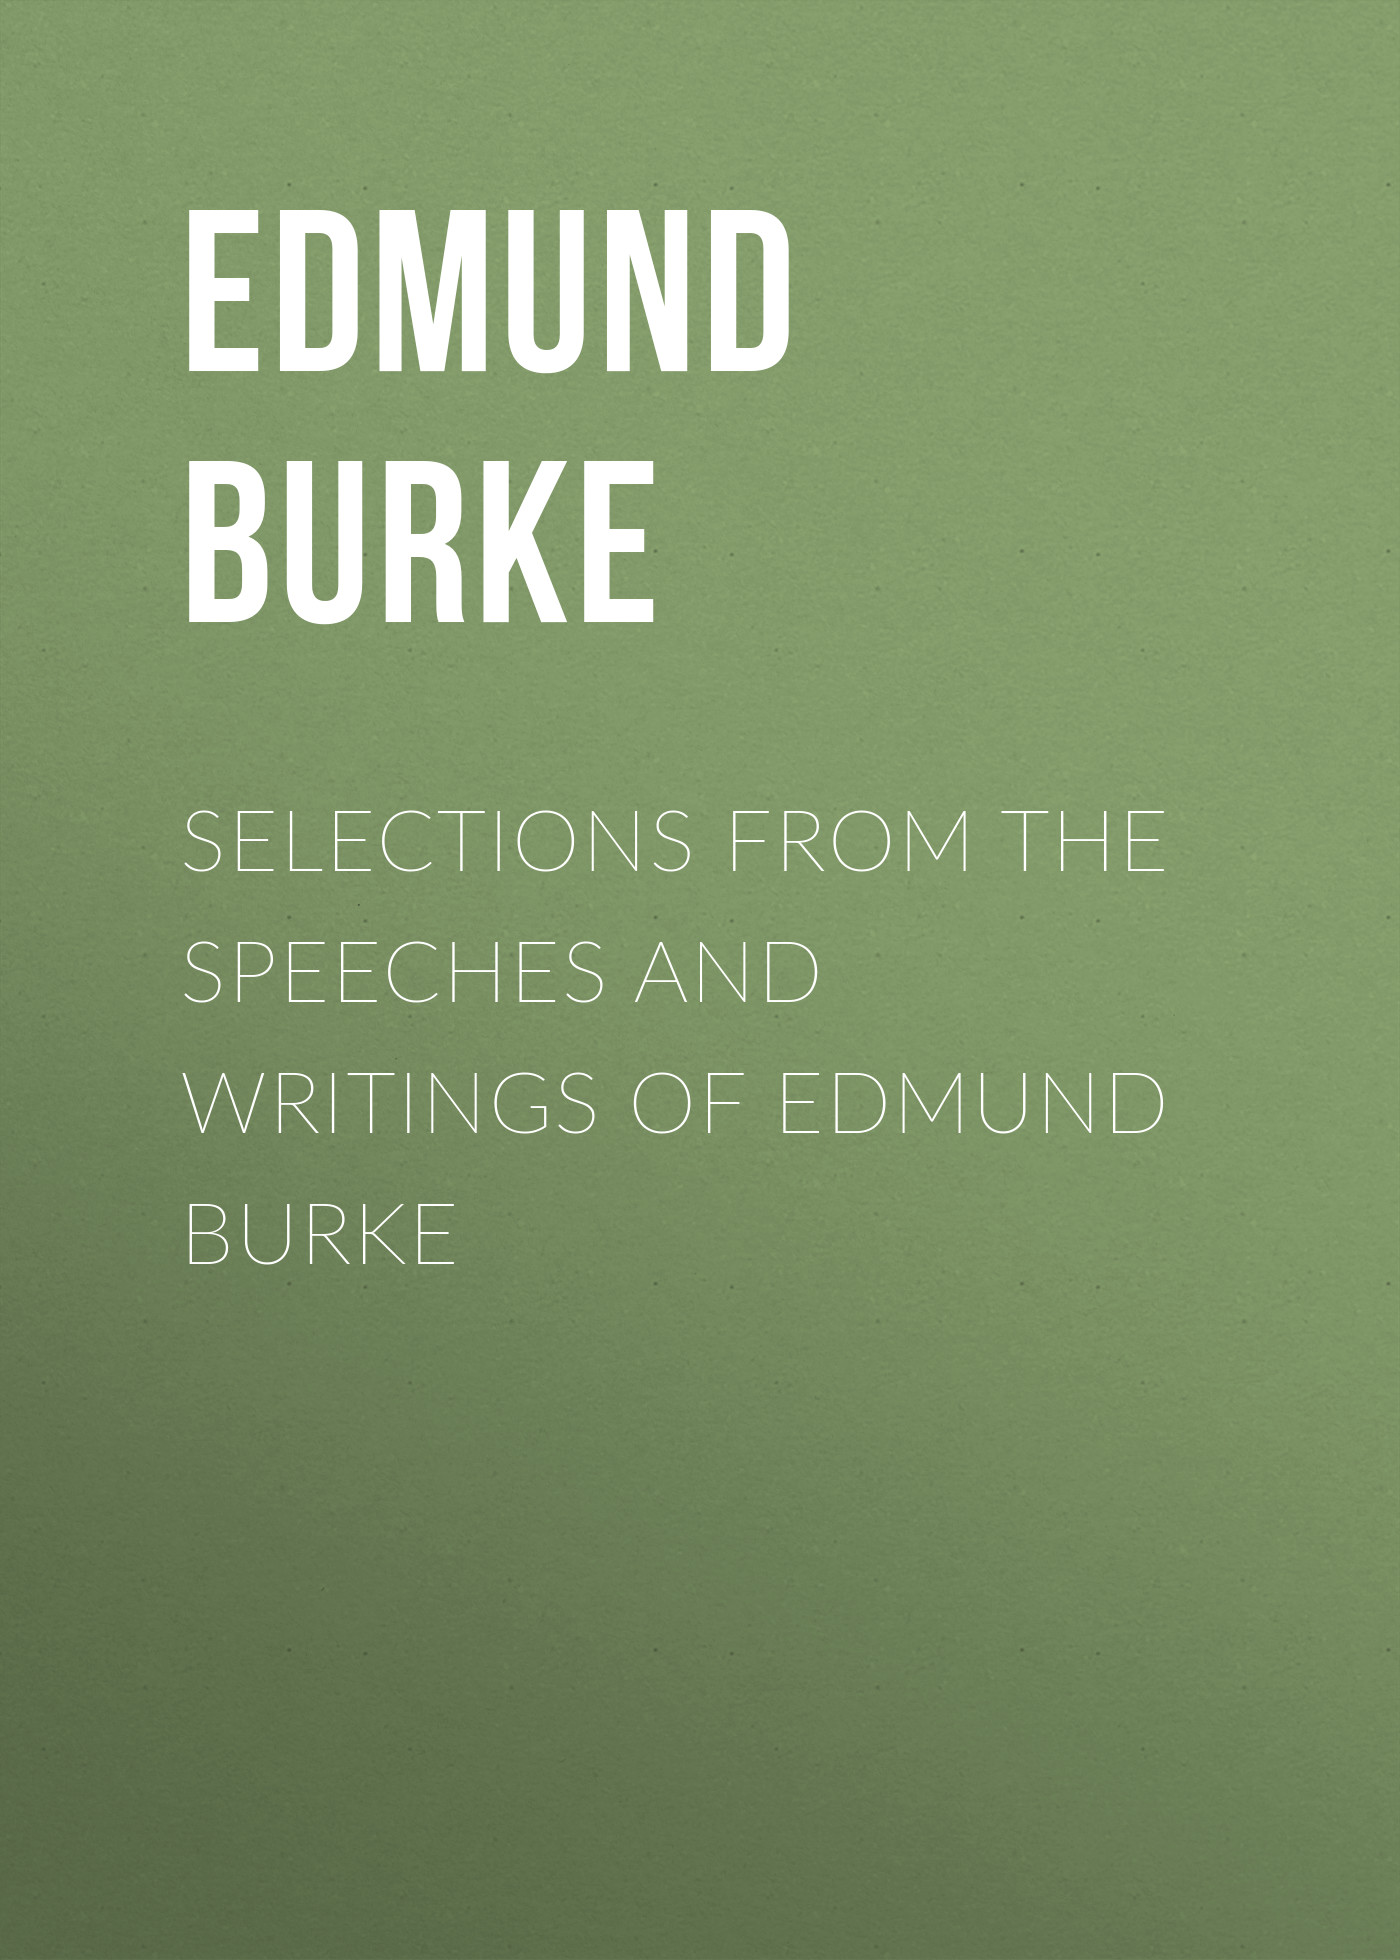 Edmund Burke Selections from the Speeches and Writings of Edmund Burke edmund burke the works of the right honourable edmund burke vol 12 of 12